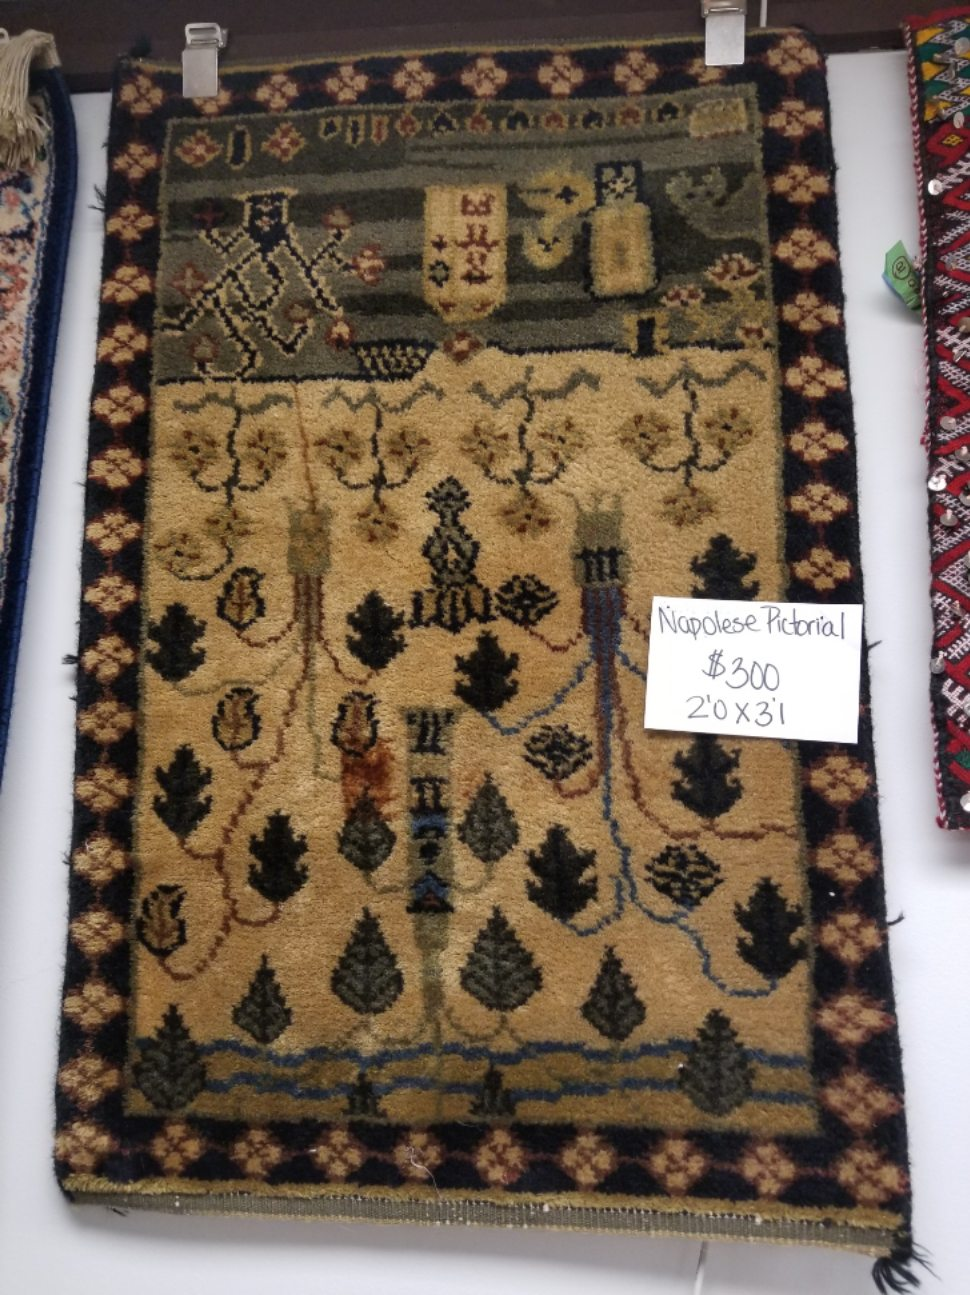 Nepalese Pictorial Rug for Sale